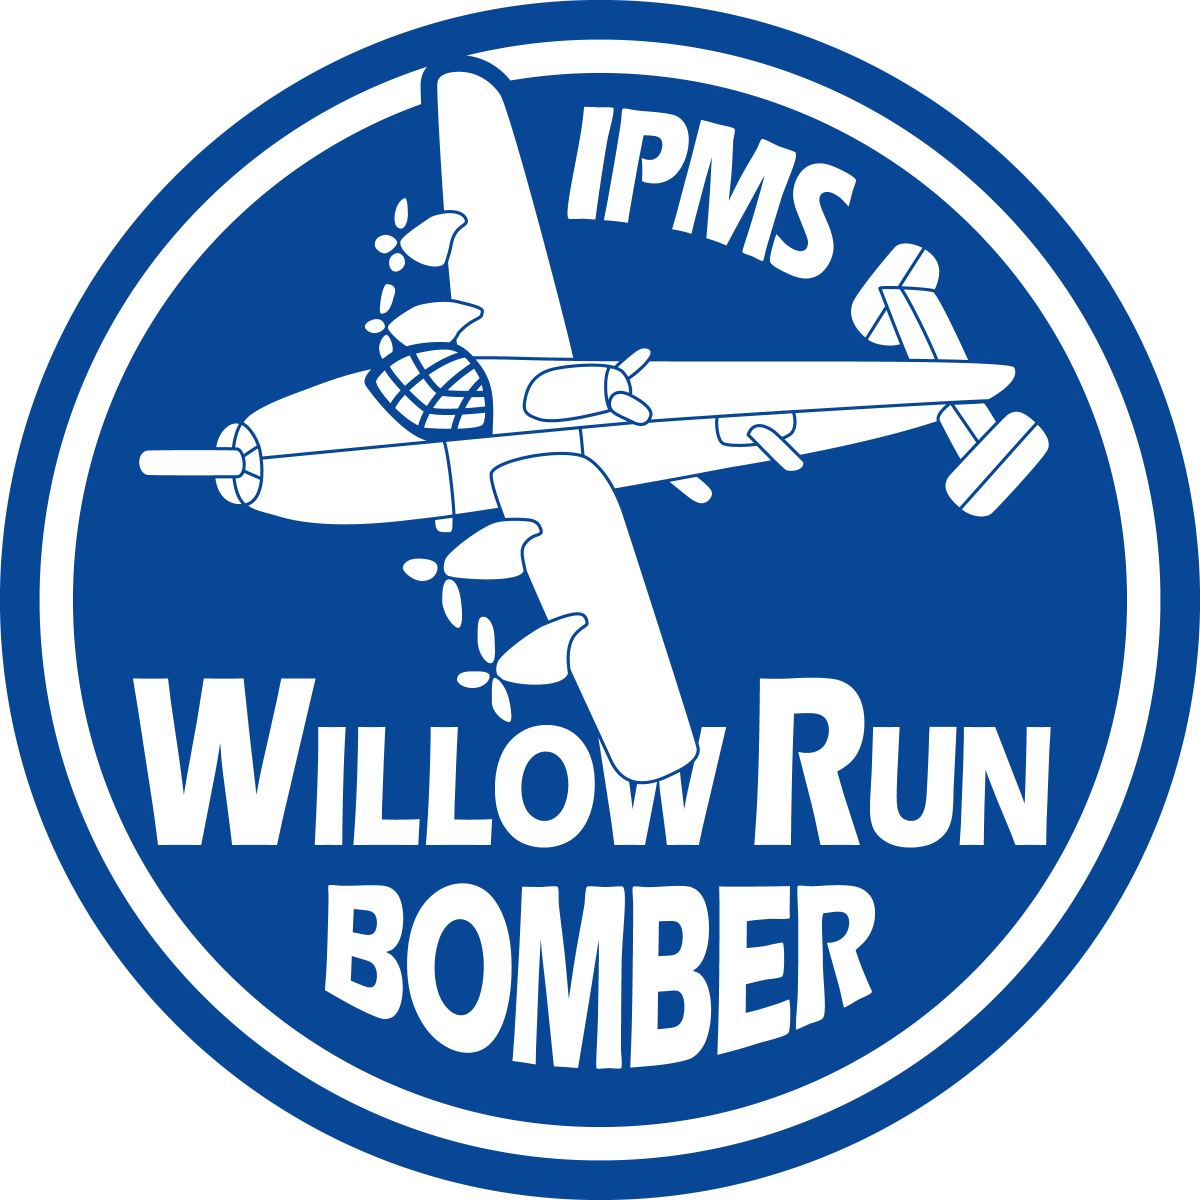 Willow Run Bomber Plant IPMS Logo